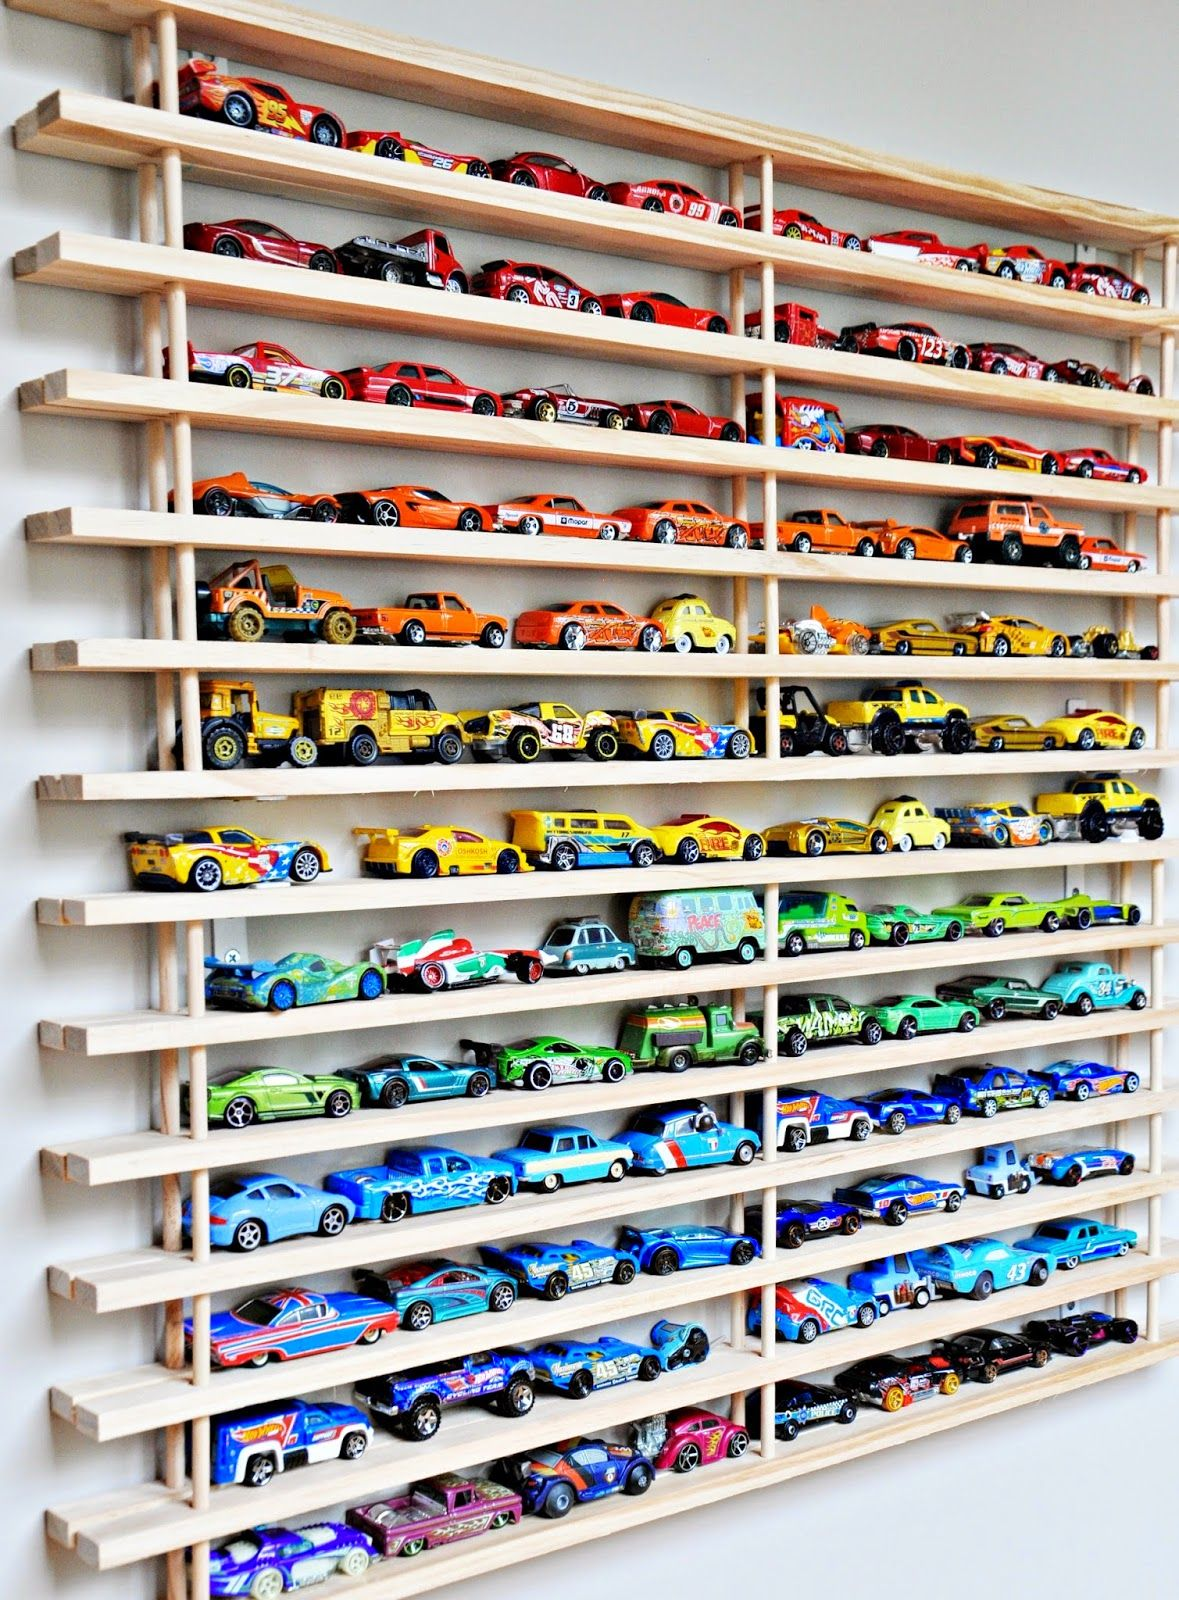 Cars Teppich Awesome Ways To Organize And Store Your Cars çocuk Moda Erkek